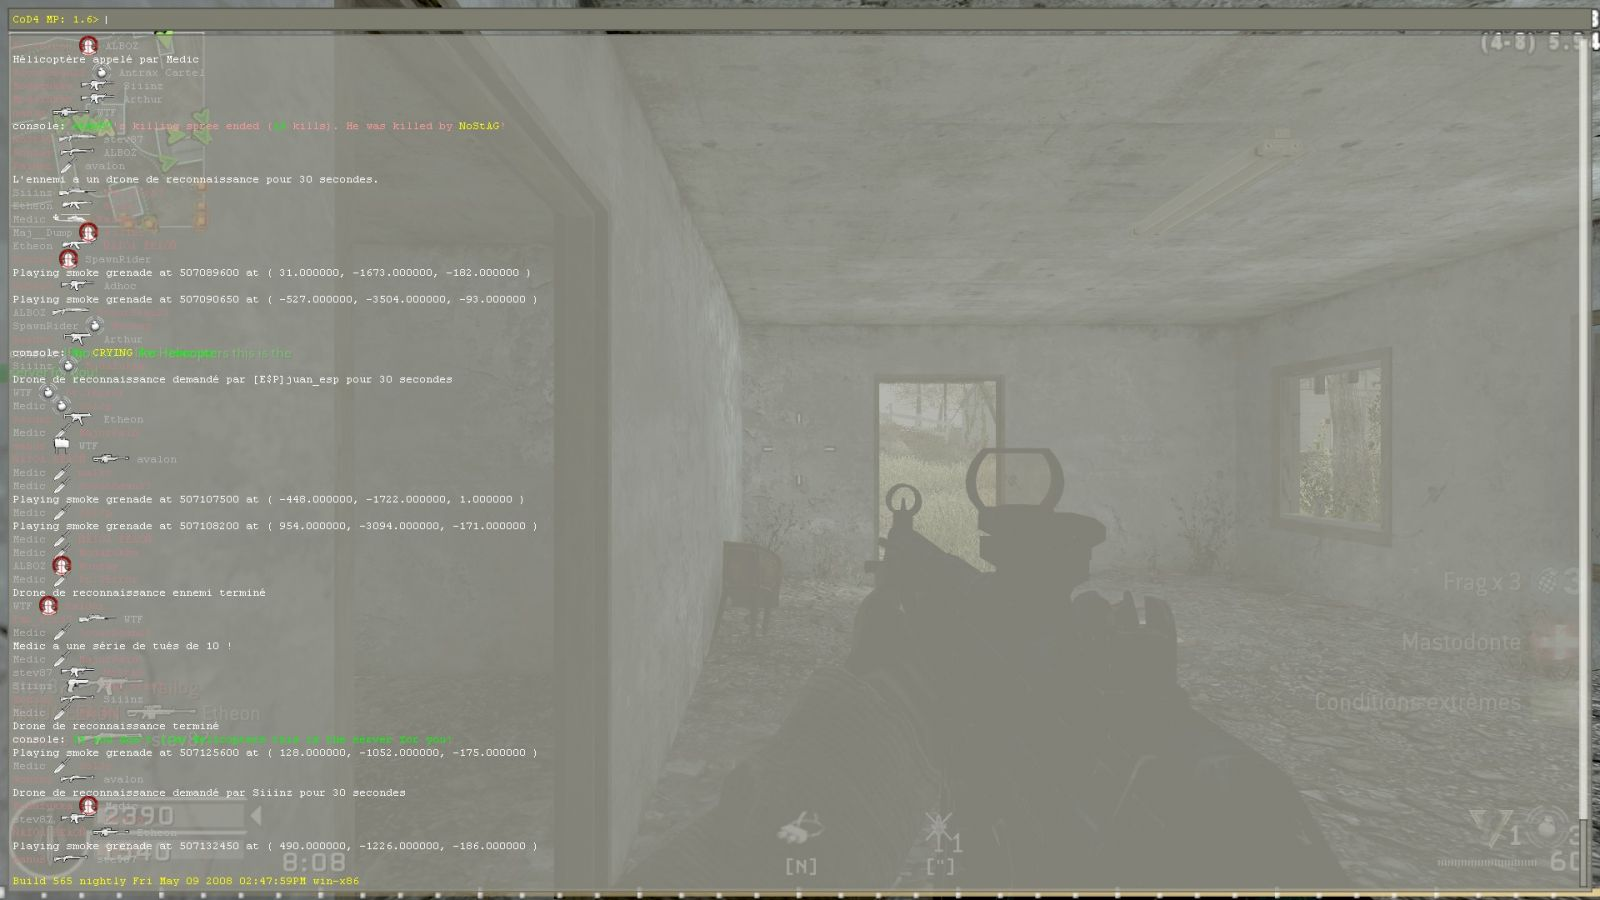 Cod4: Only knife time